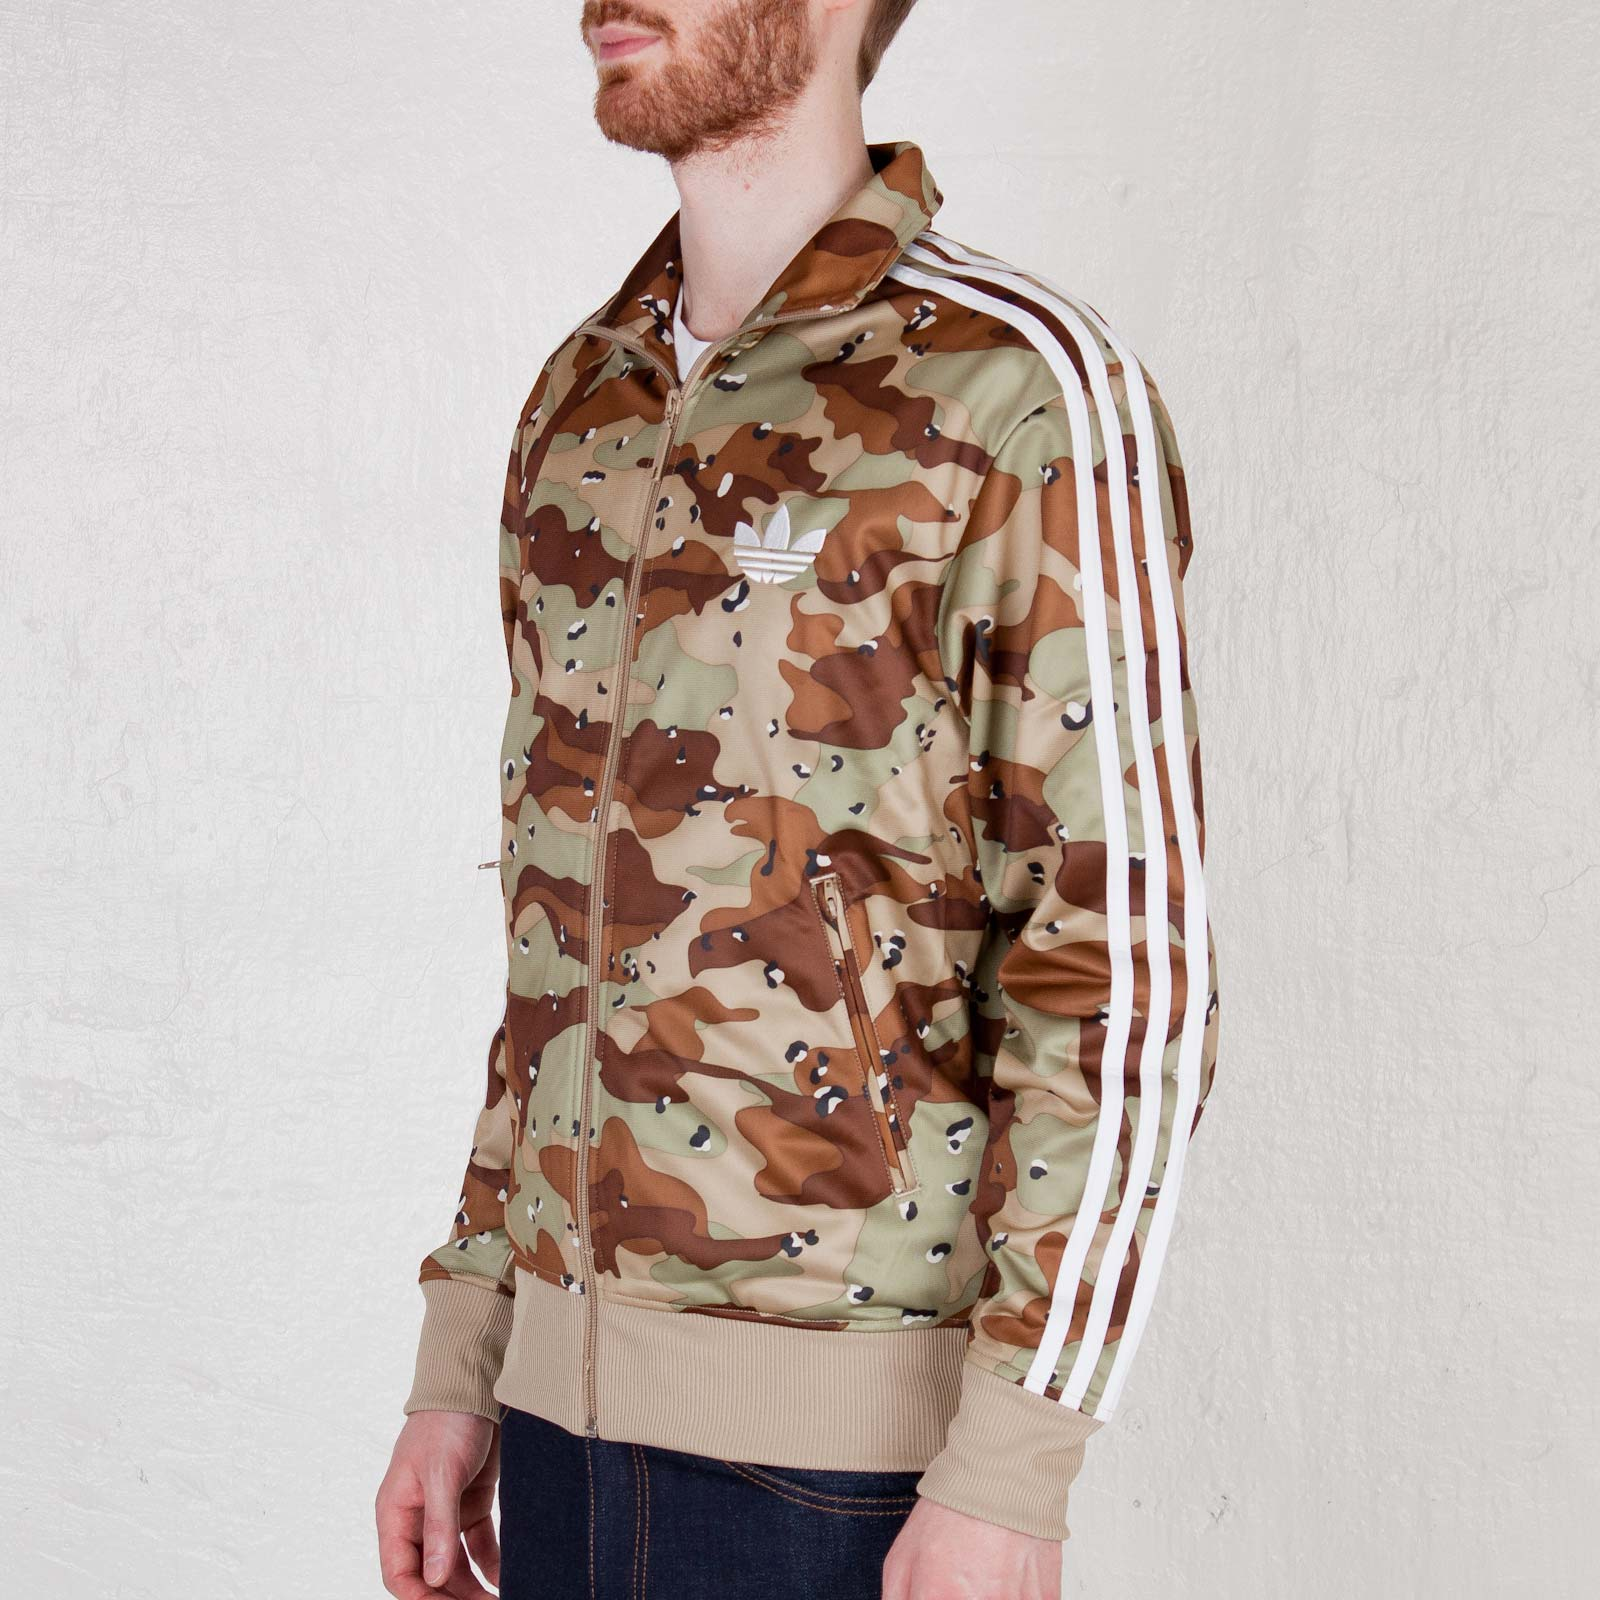 Xl. Clothes, Shoes & Accessories Adidas Originals Firebird Bliss Camo Track Top Size